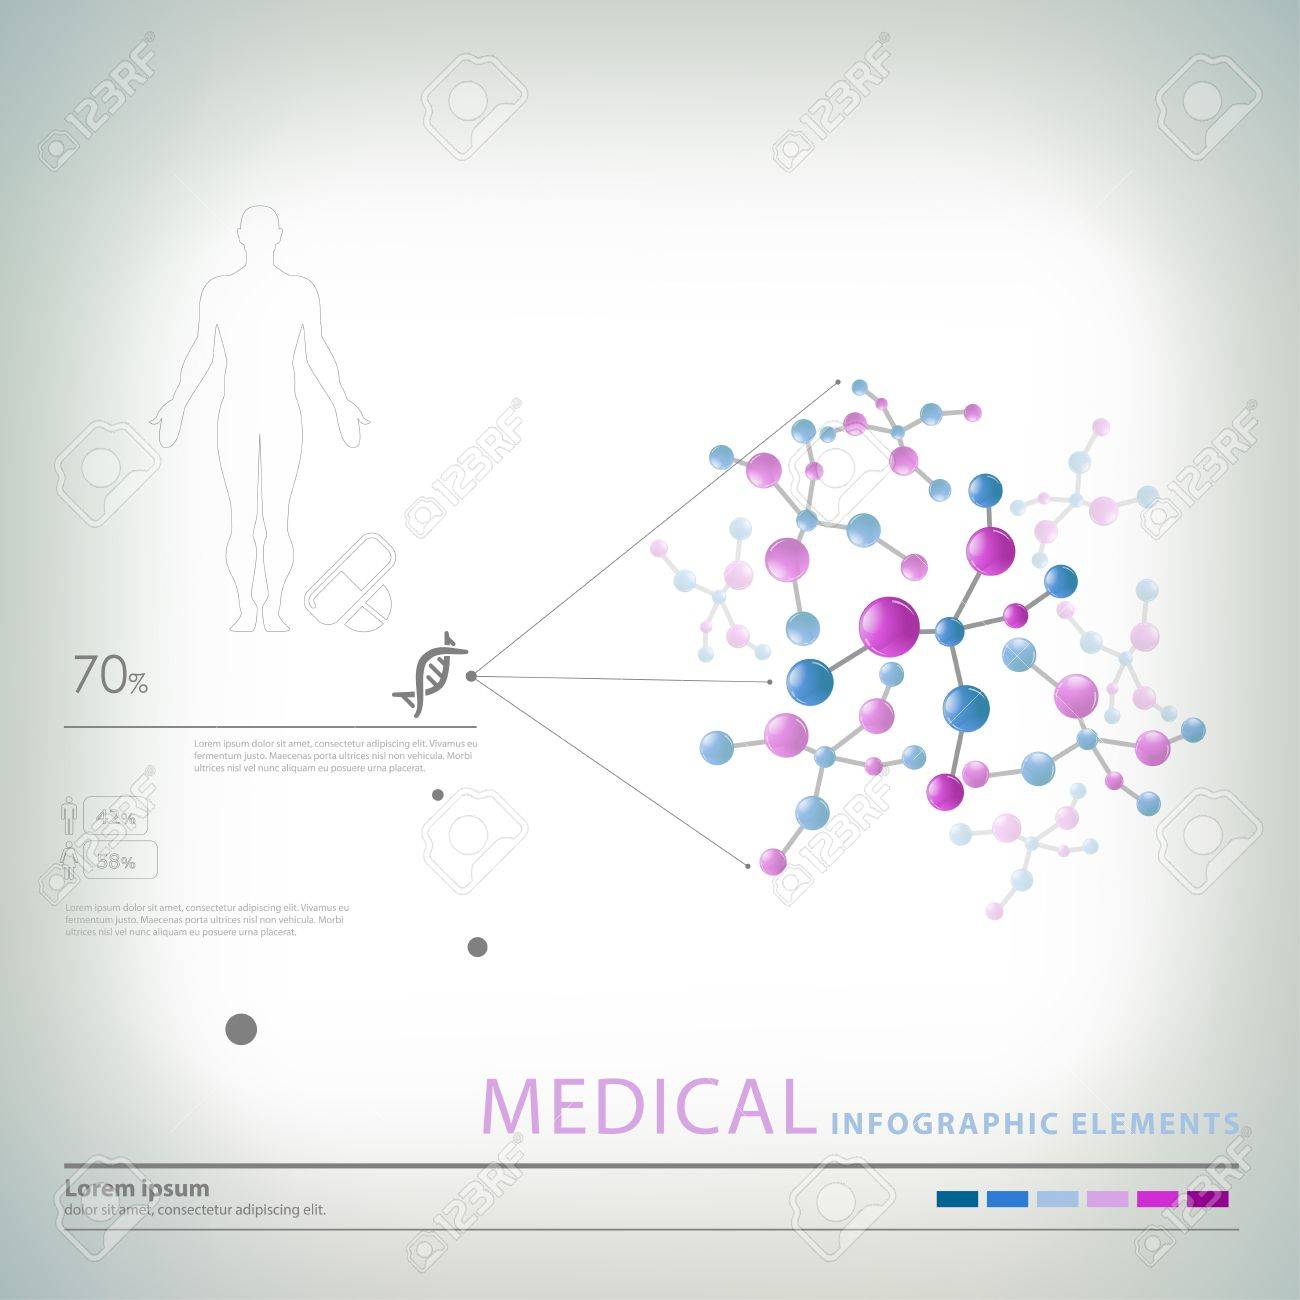 medical infographic elements Stock Vector - 18930582